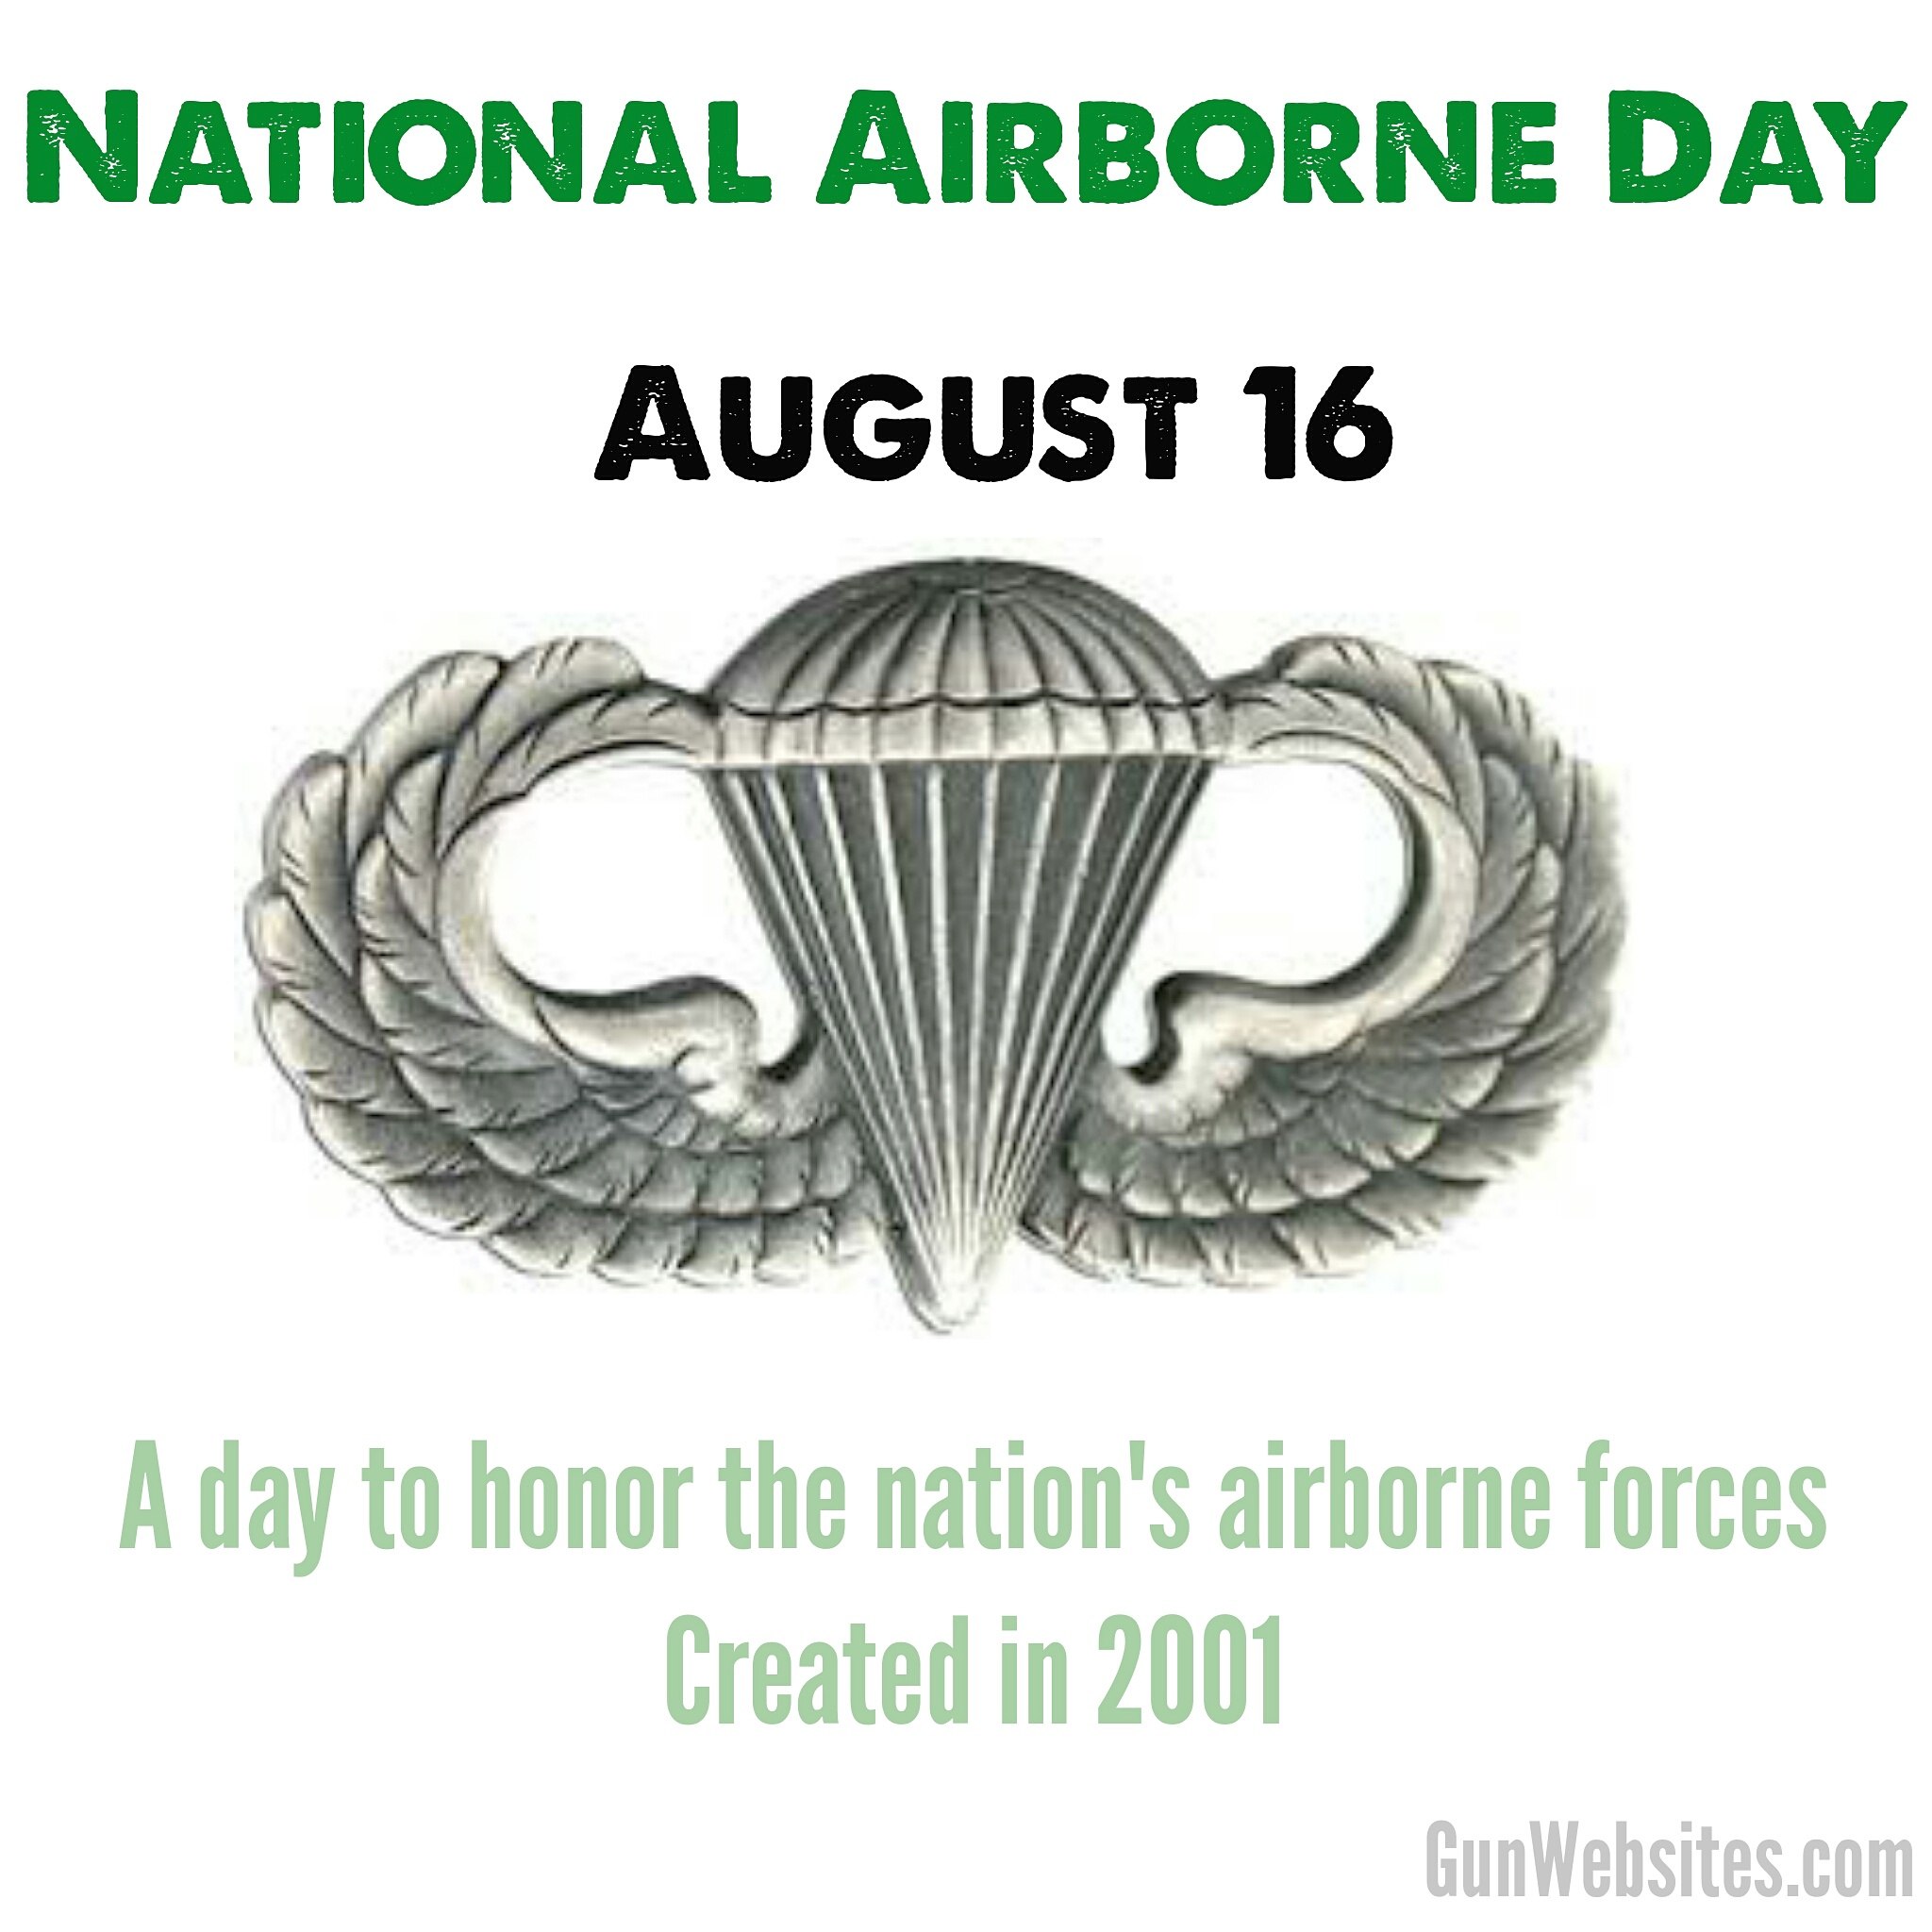 designated by the United States Congress to honor the nation's airborne forces of the Armed Forces.